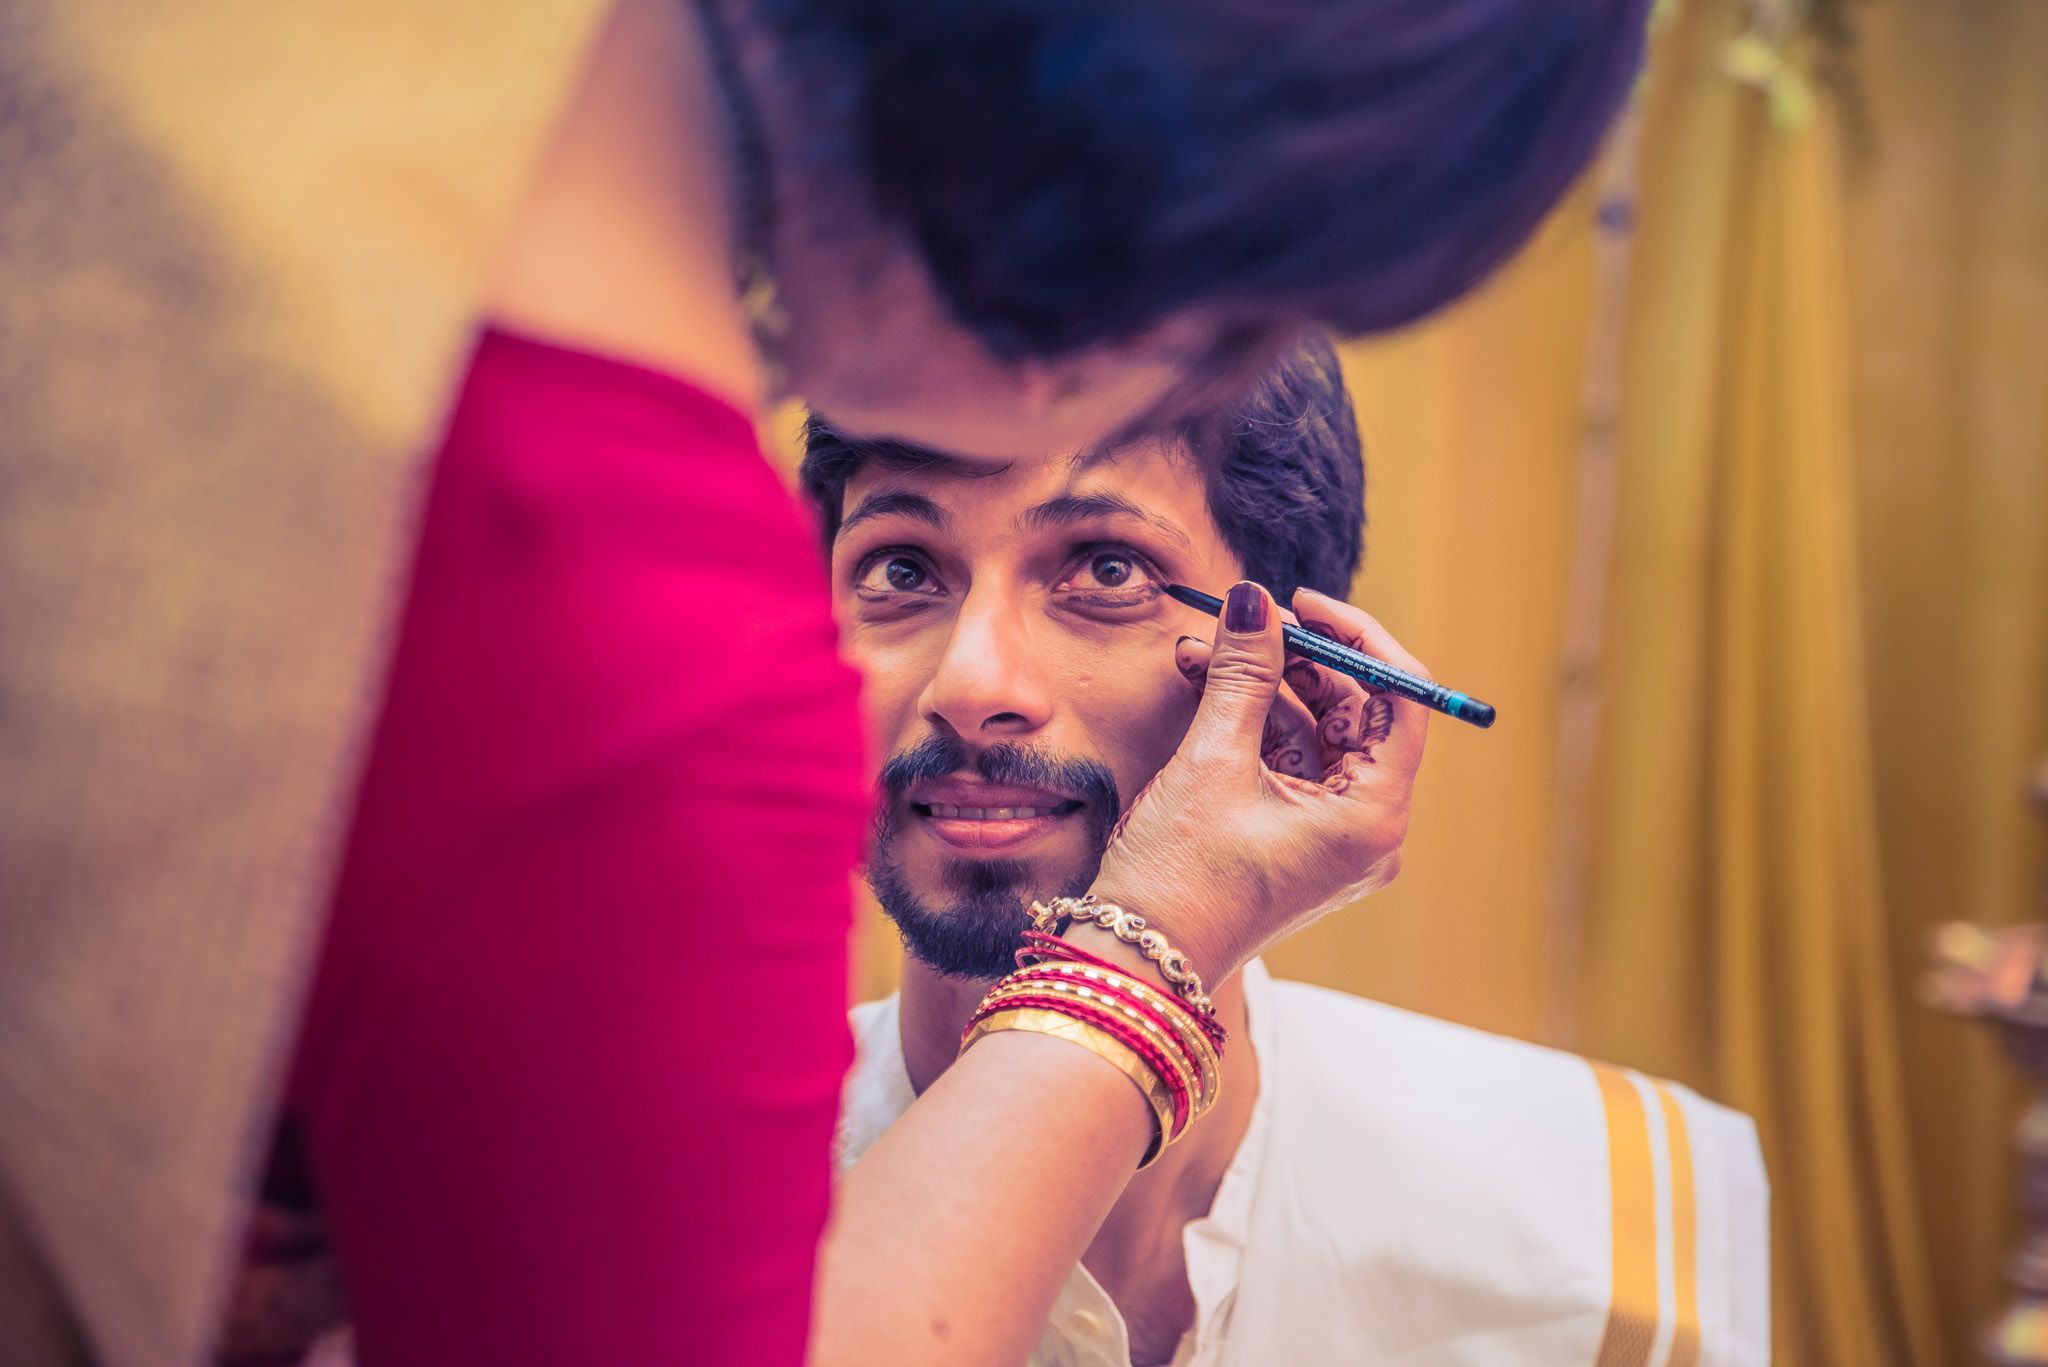 WhatKnot-Candid-Wedding-Photography-Mumbai-Bangalore-97